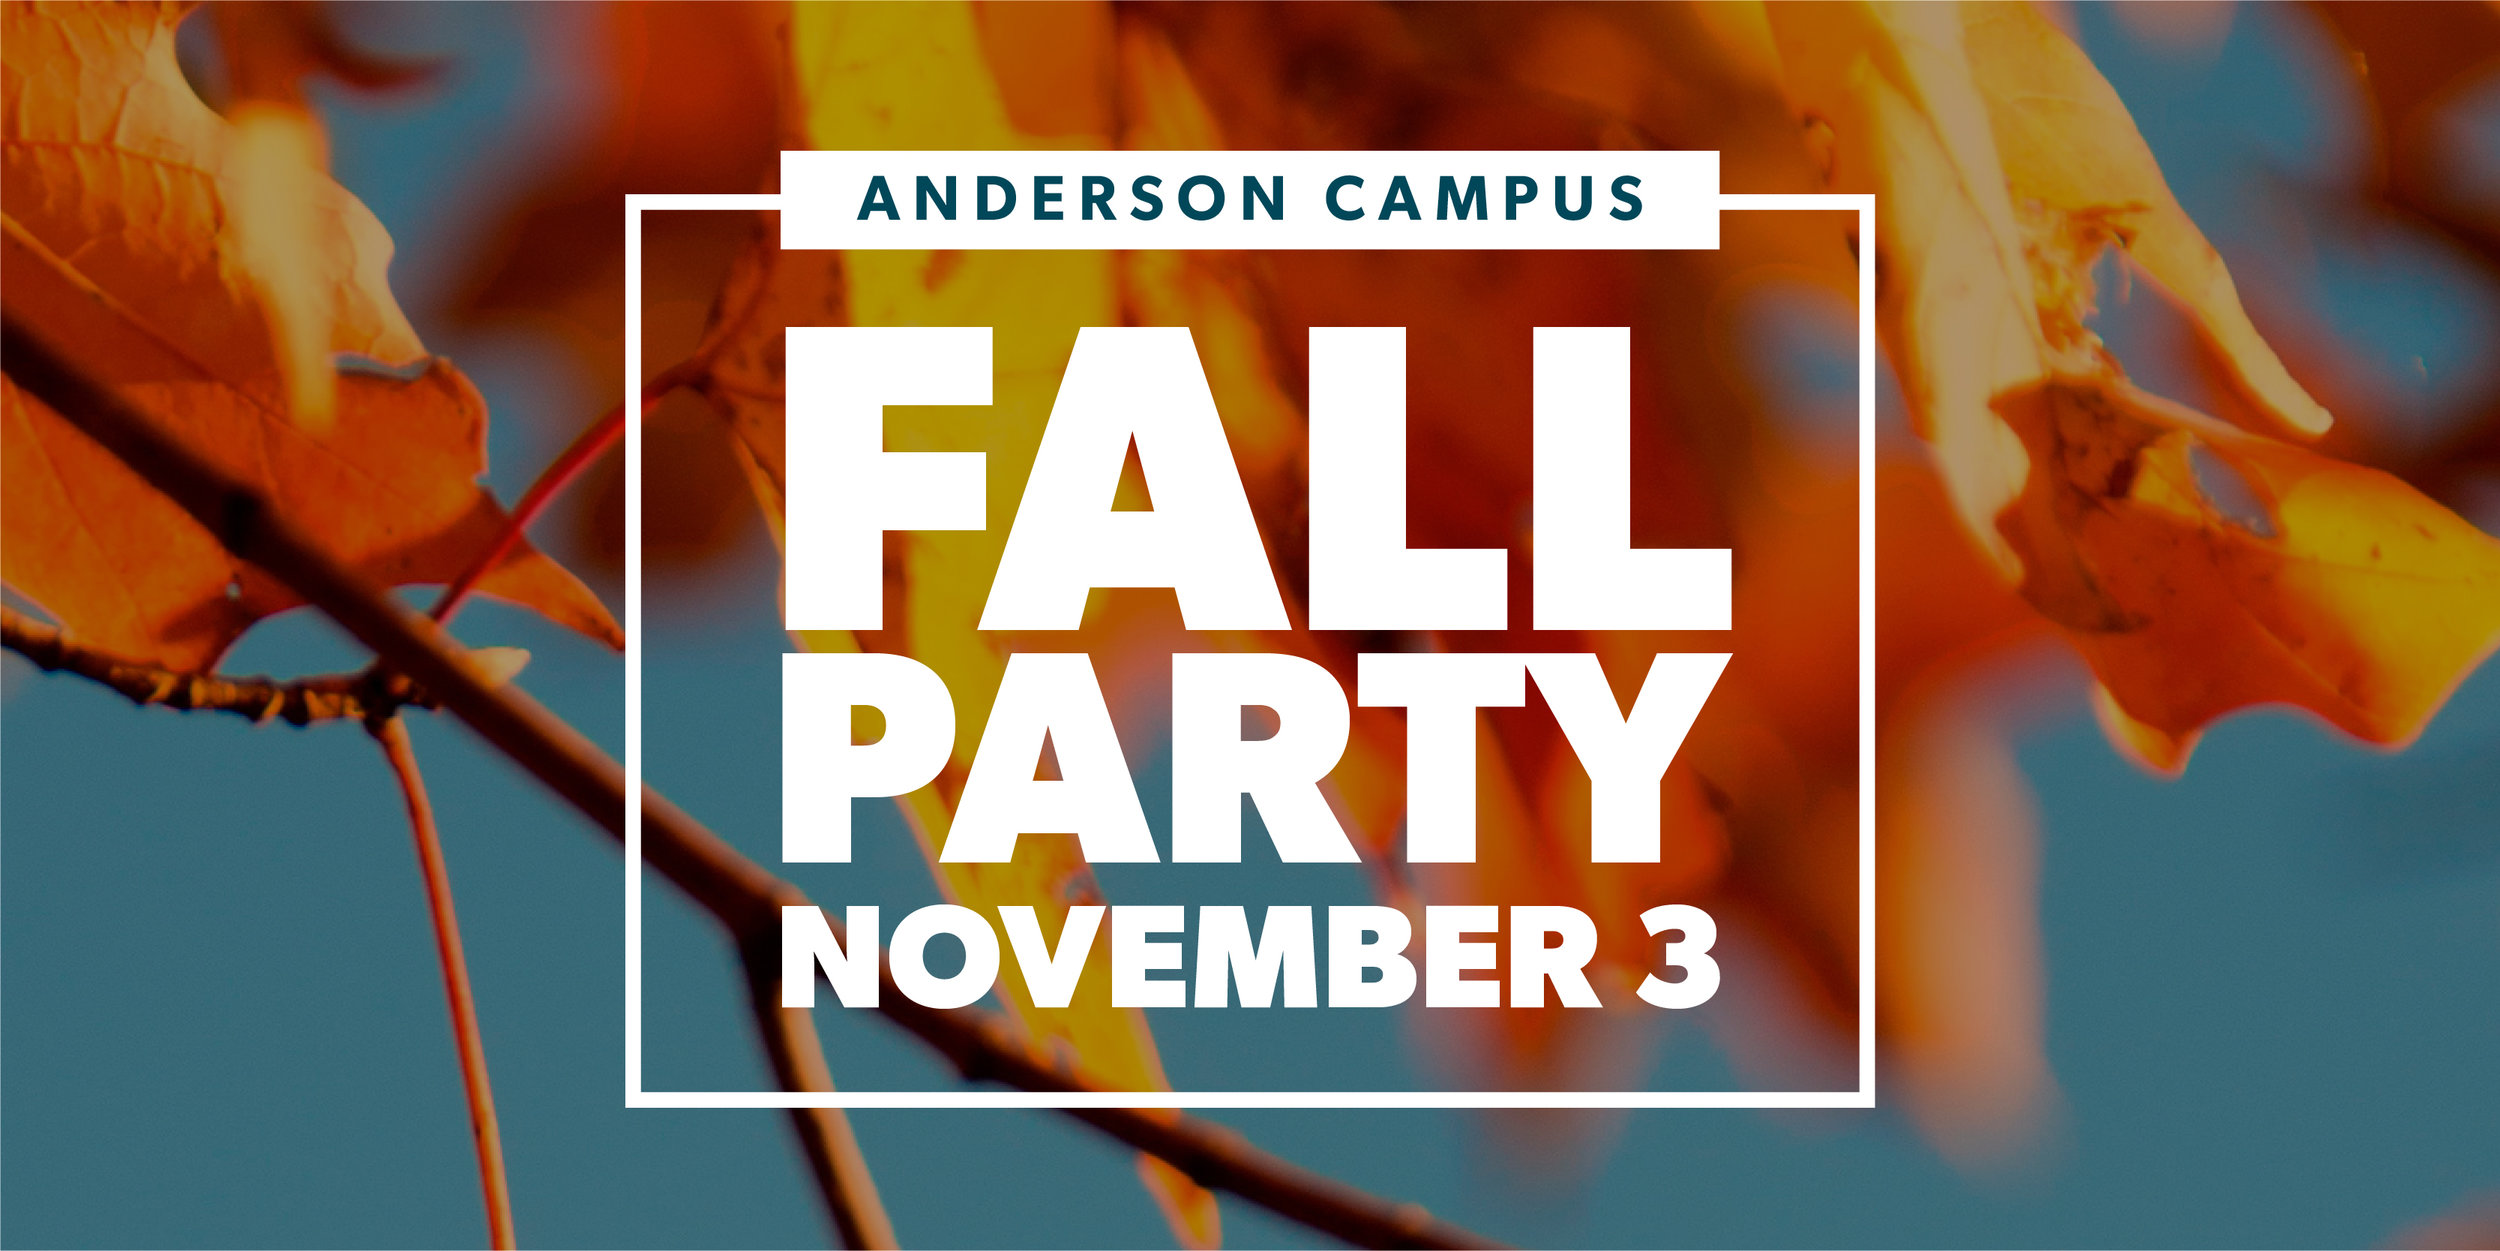 Anderson Fall Party-02.jpg